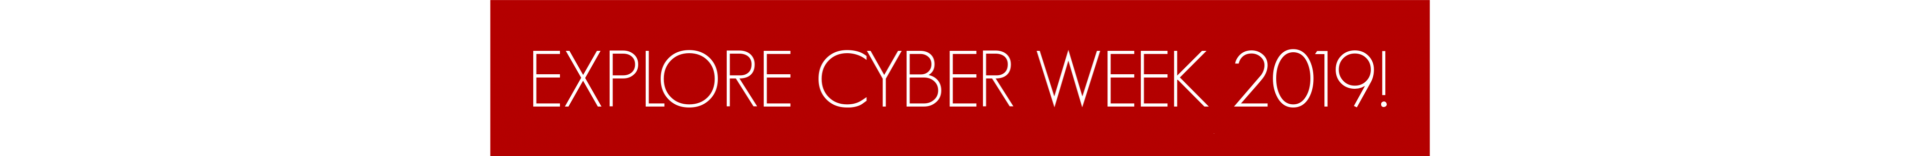 explore cyber week 2019 picks, deals + sale alerts from Supplechic a fashion and lifestyle blog based in Baltimore